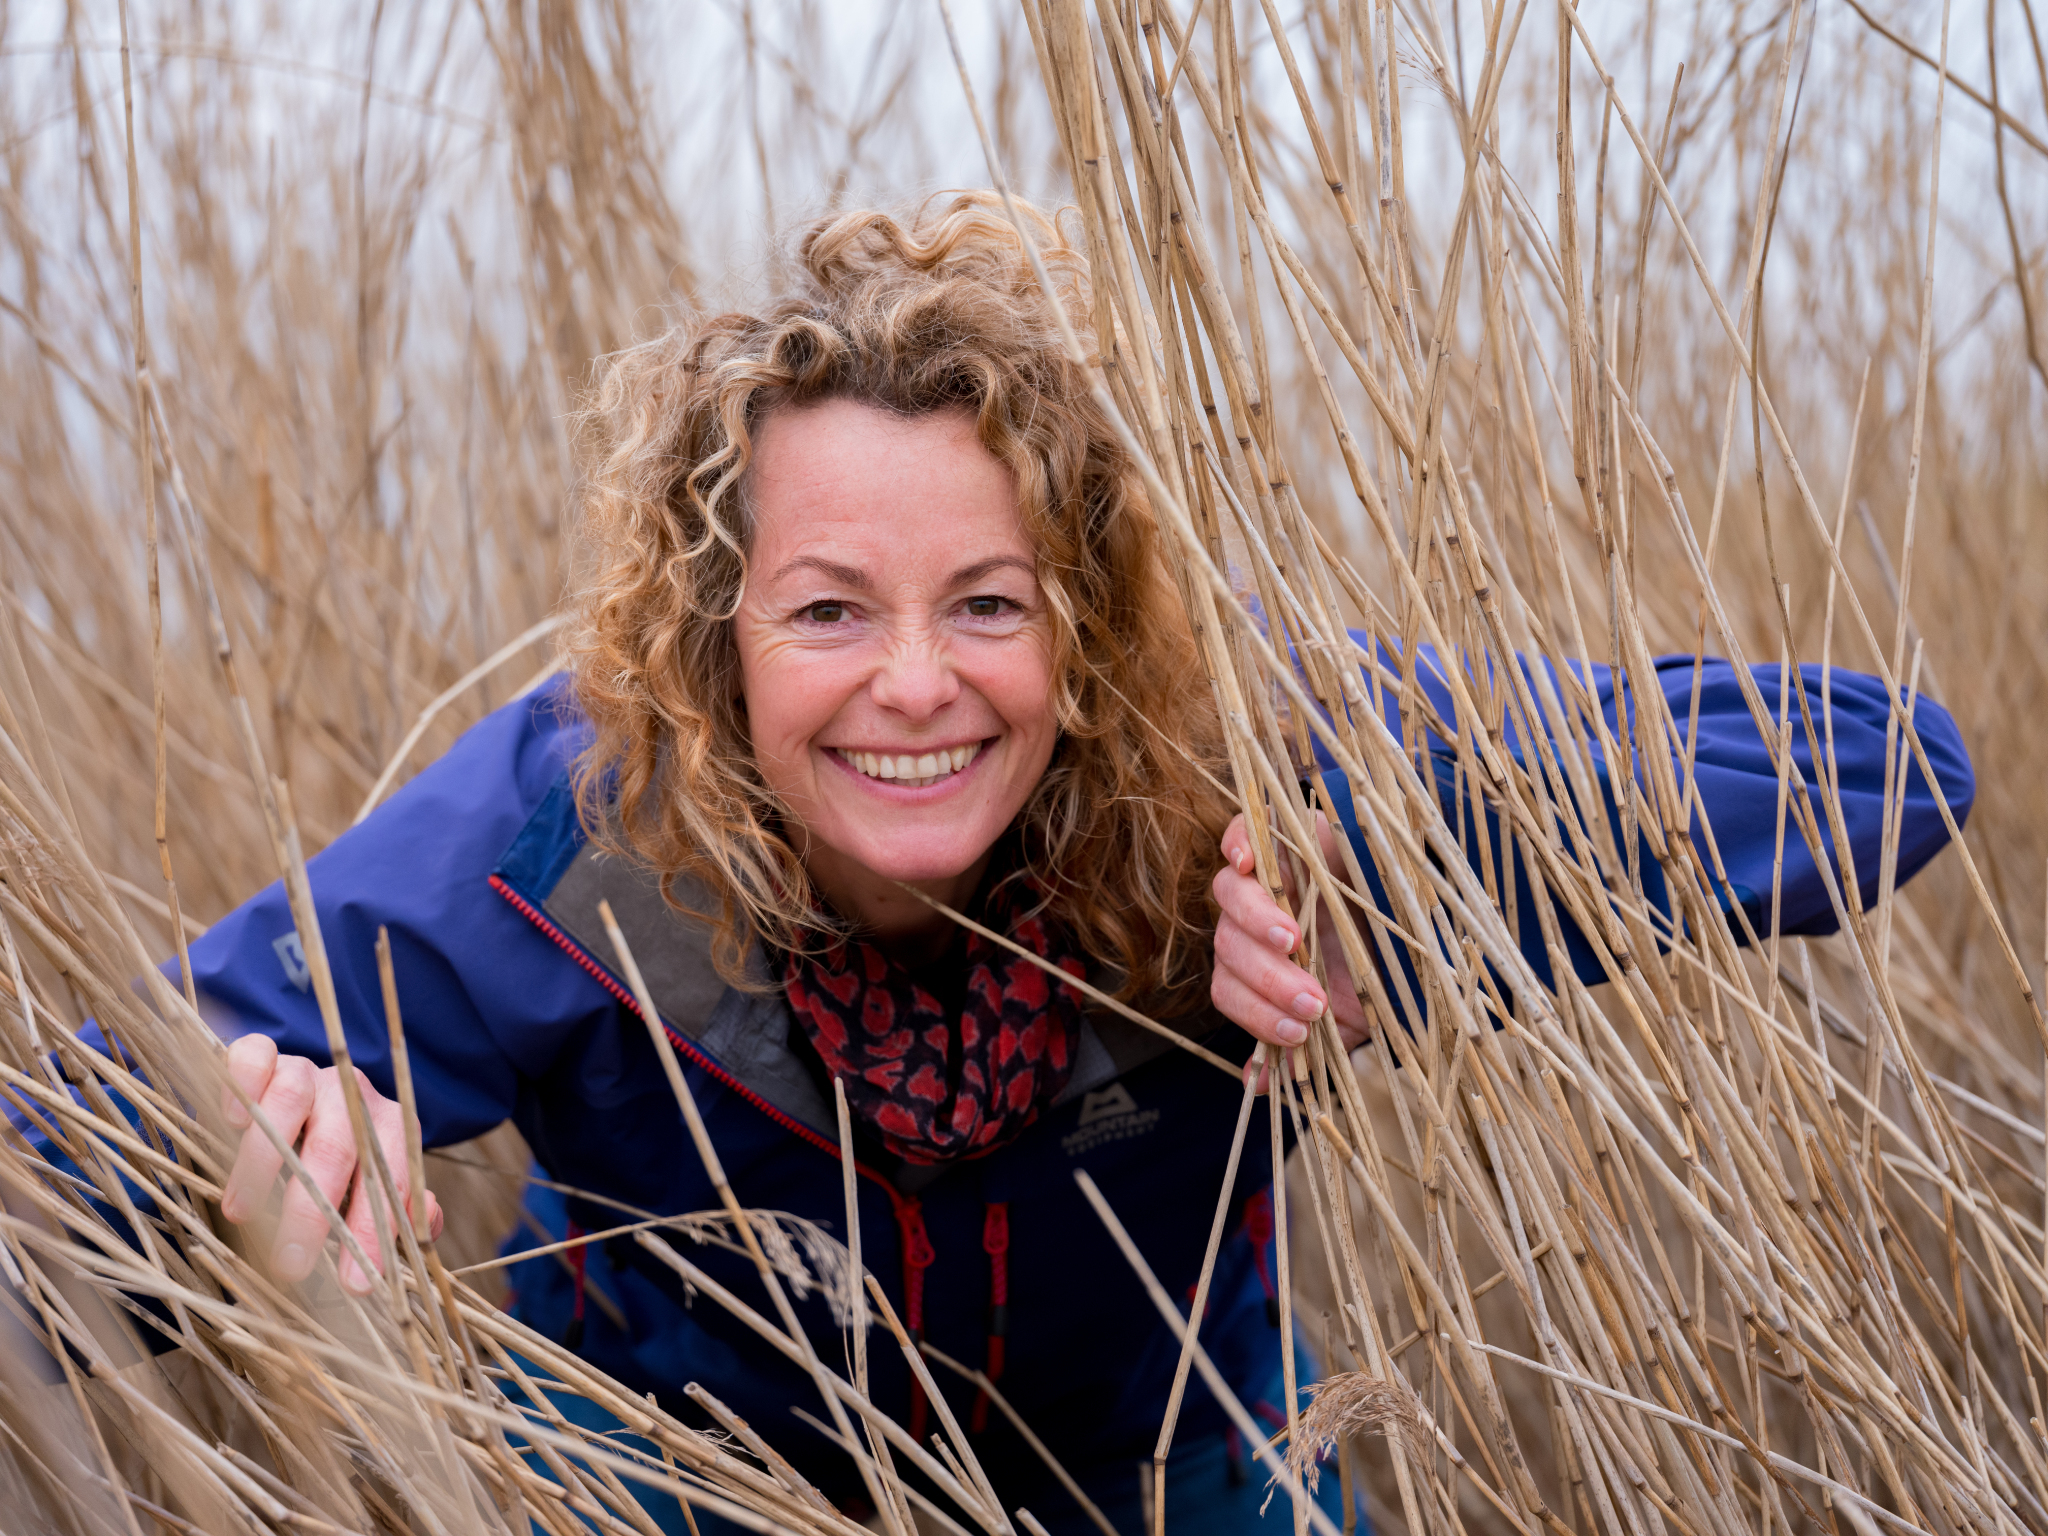 Kate Humble is the new president of wetland conservation charity, WWT.